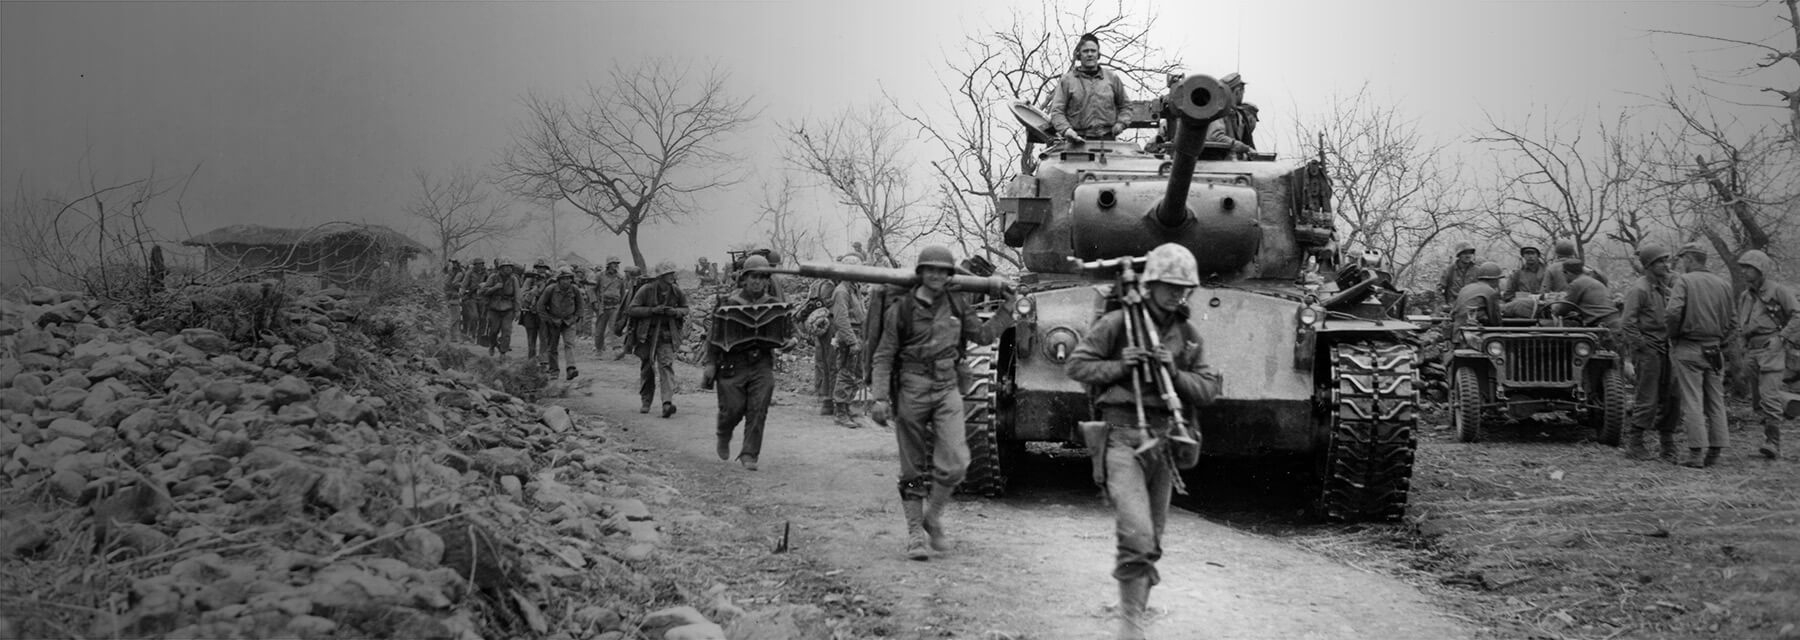 The Marines of Headquarters Company, 3rd Battalion 7th Marines near Chuchon, Korea, April 1951.